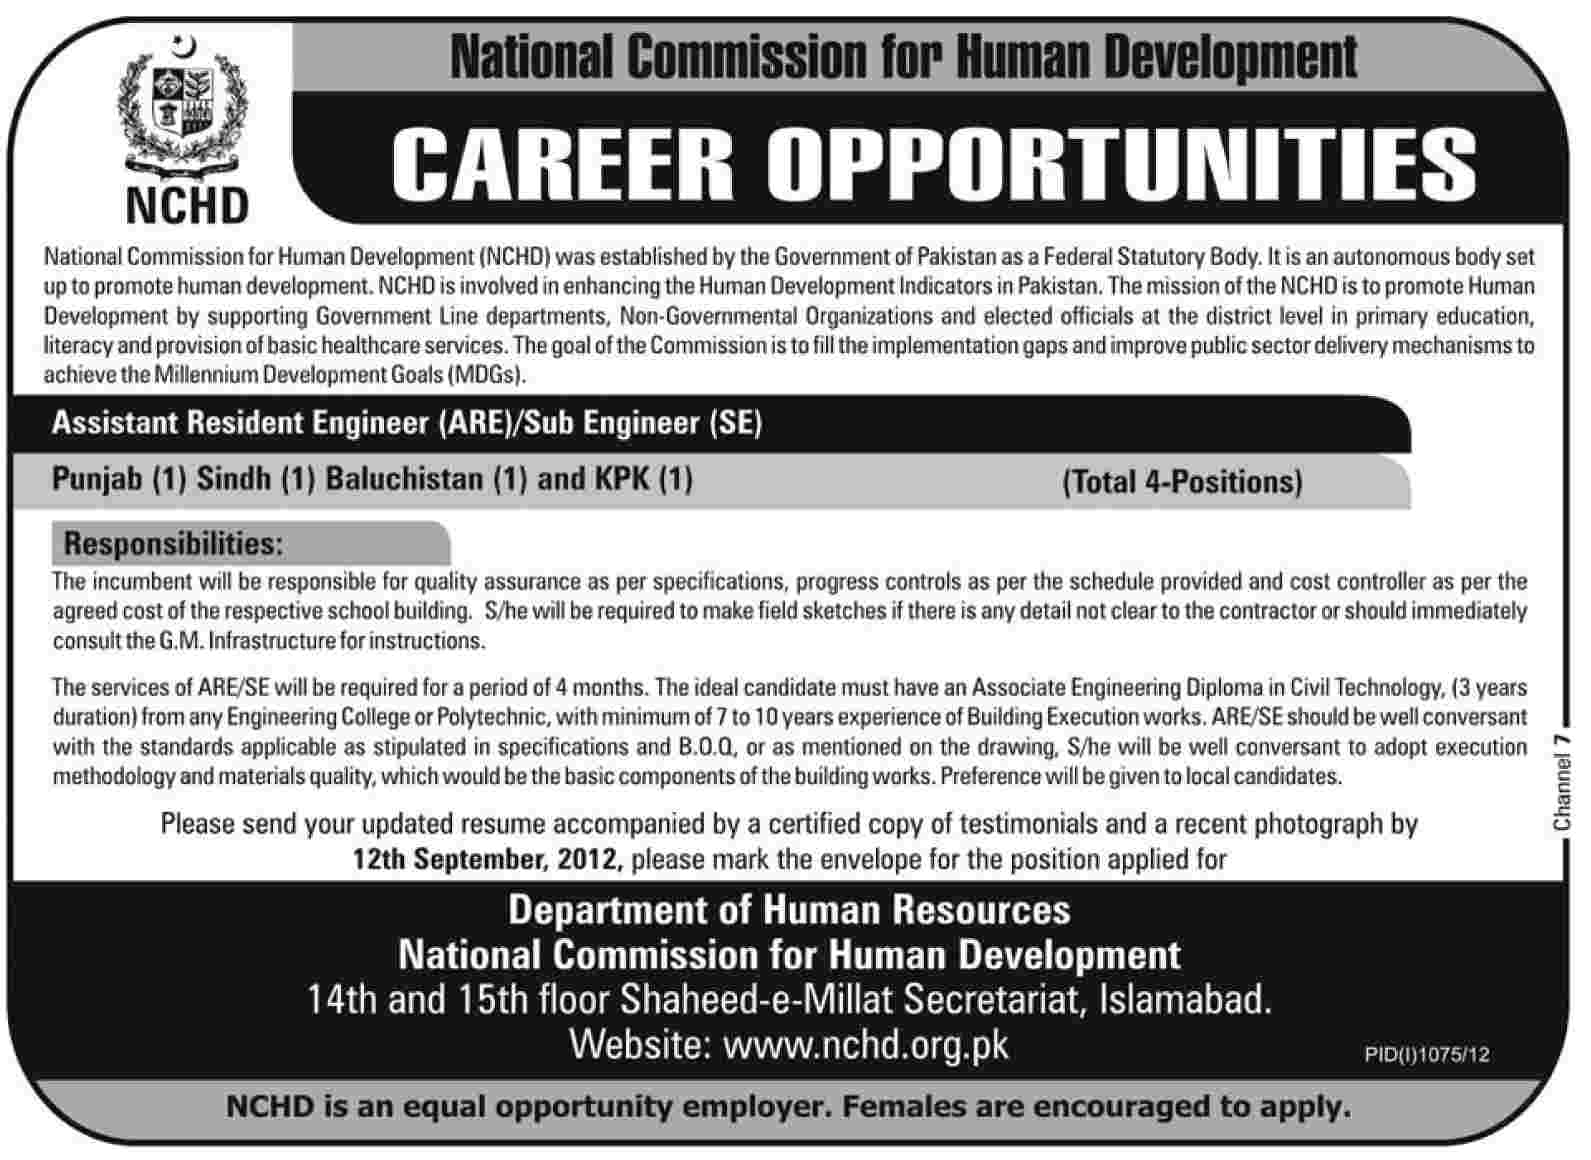 National Commission for Human Development (NCHD) Jobs (Government Jobs)